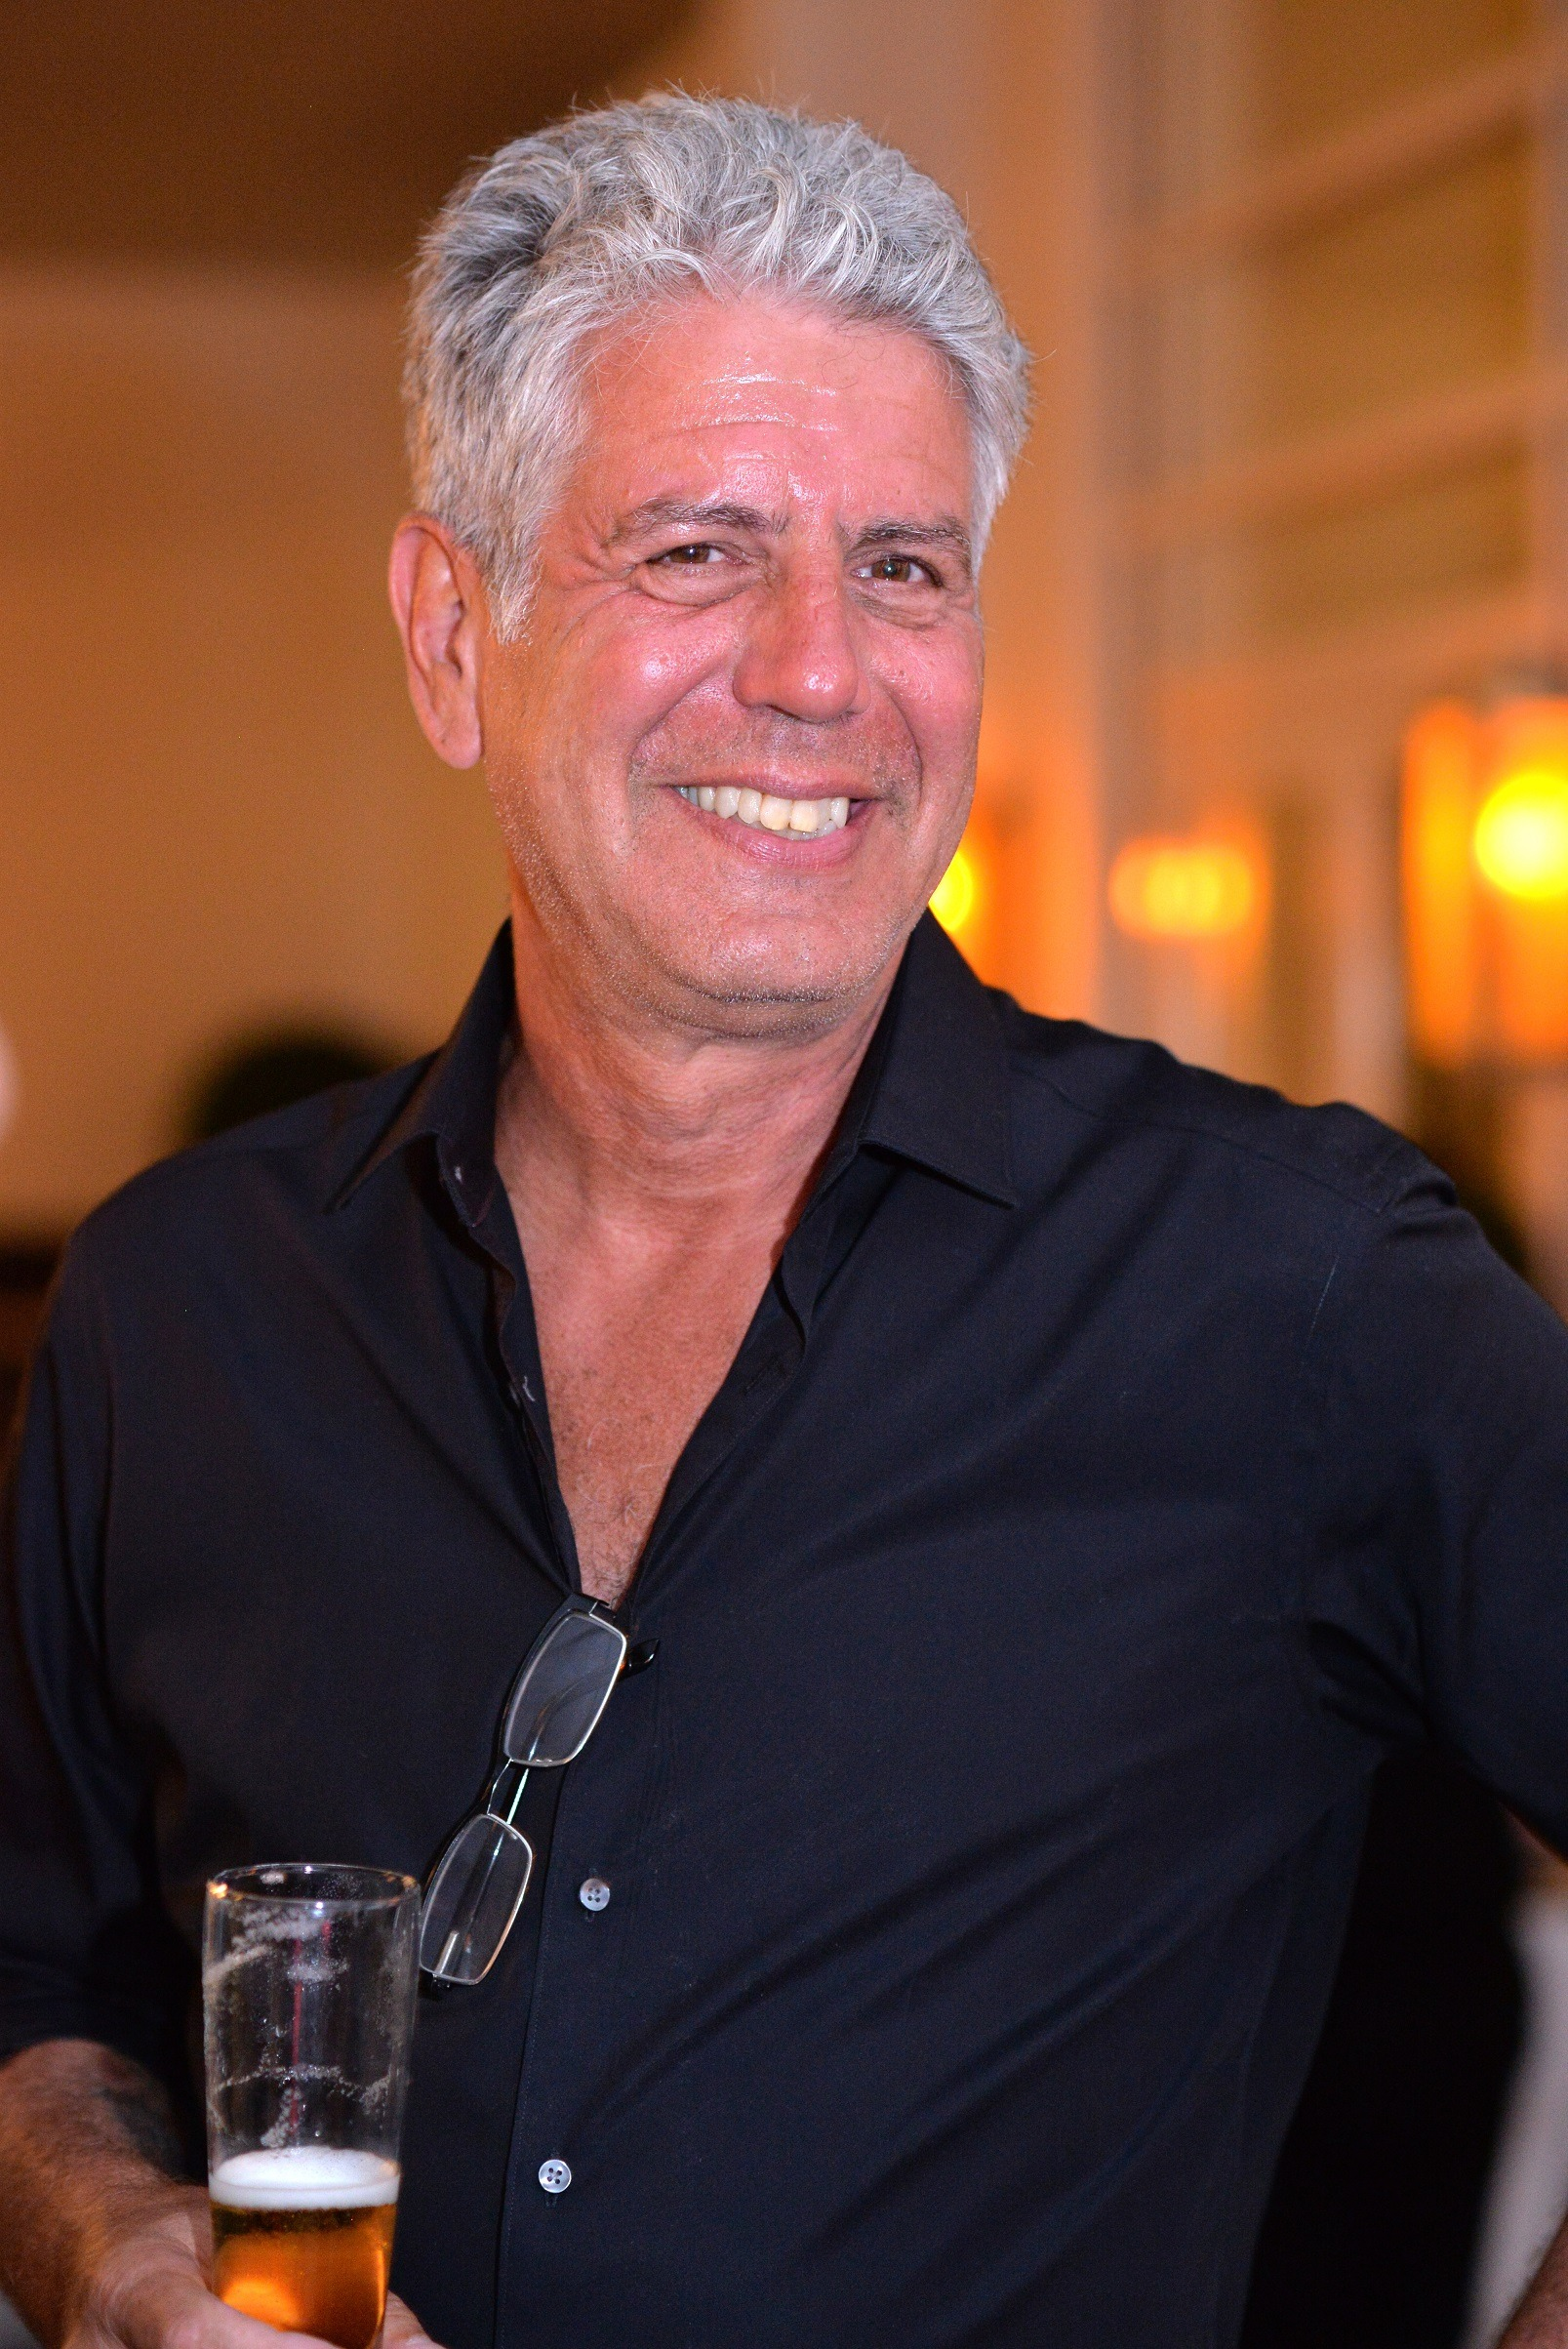 Anthony Bourdain drinking beer